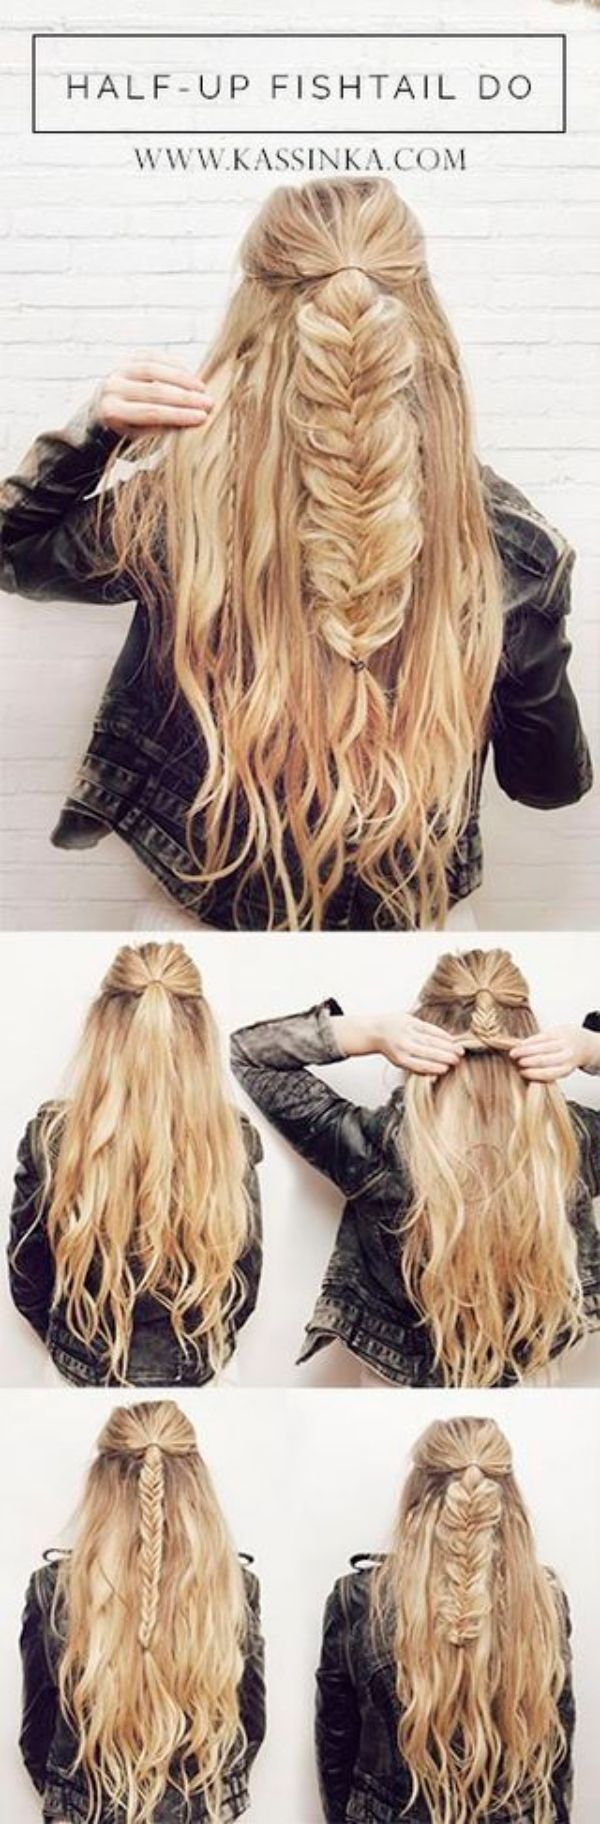 17 Hairstyles That Can be Done in 3 Minutes